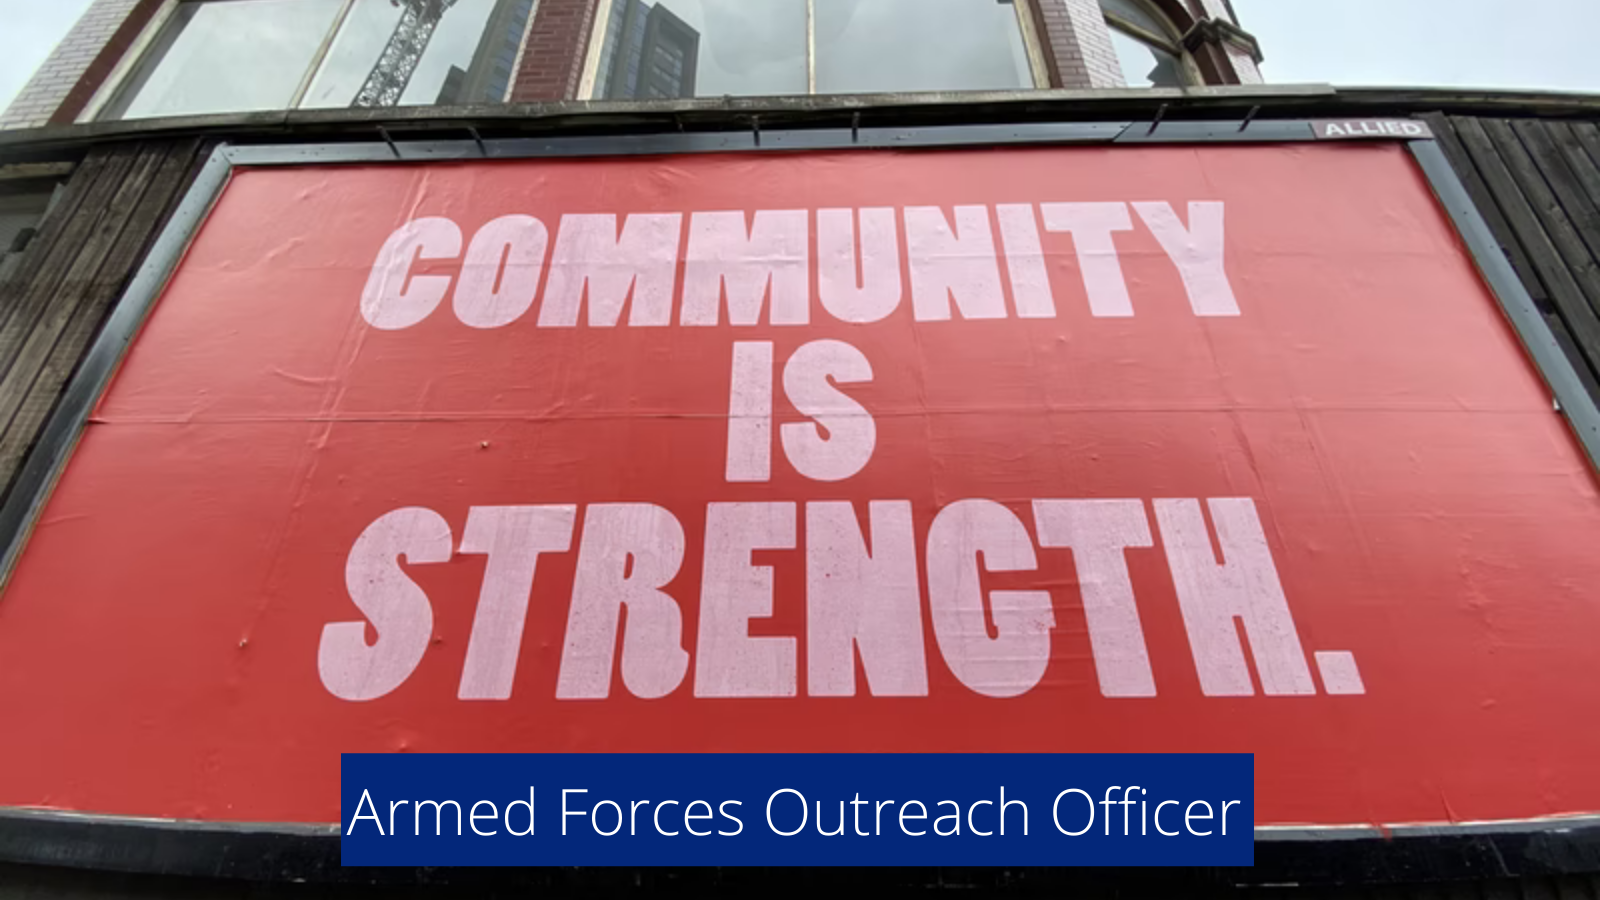 Large billboard sign that says community is strength